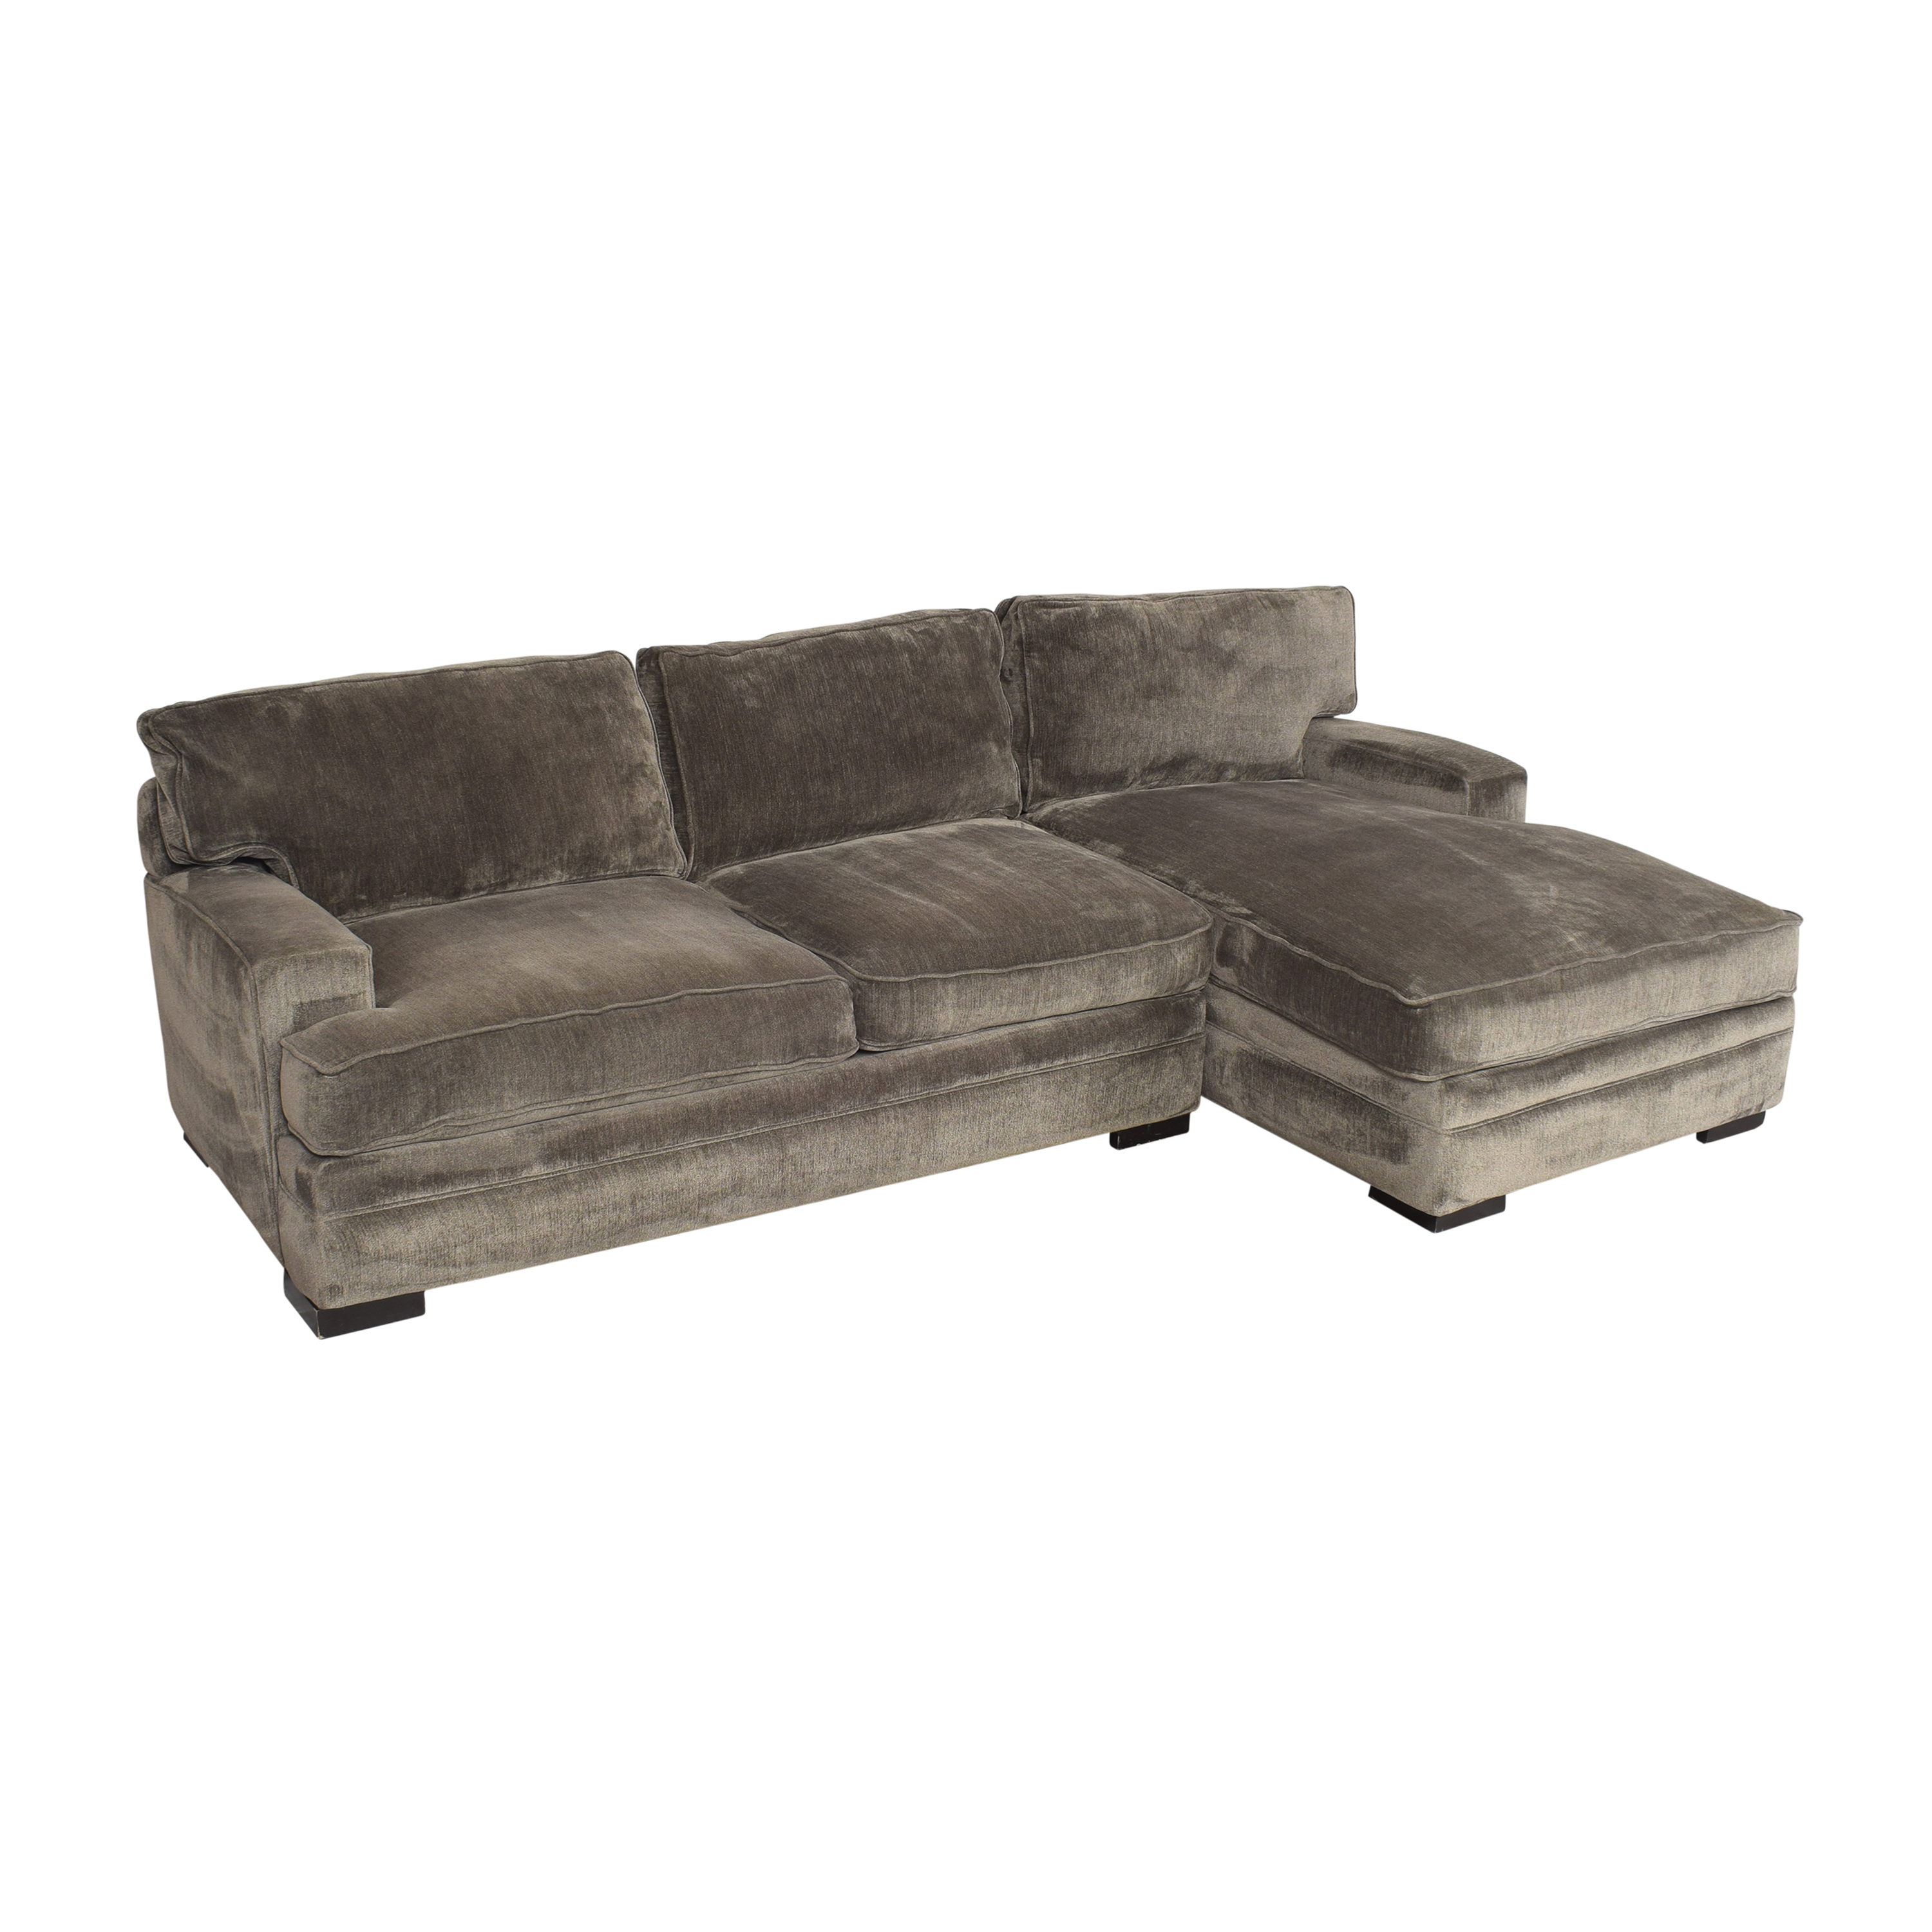 Macy's Macy's Rhyder Two Piece Sectional Sofa nyc